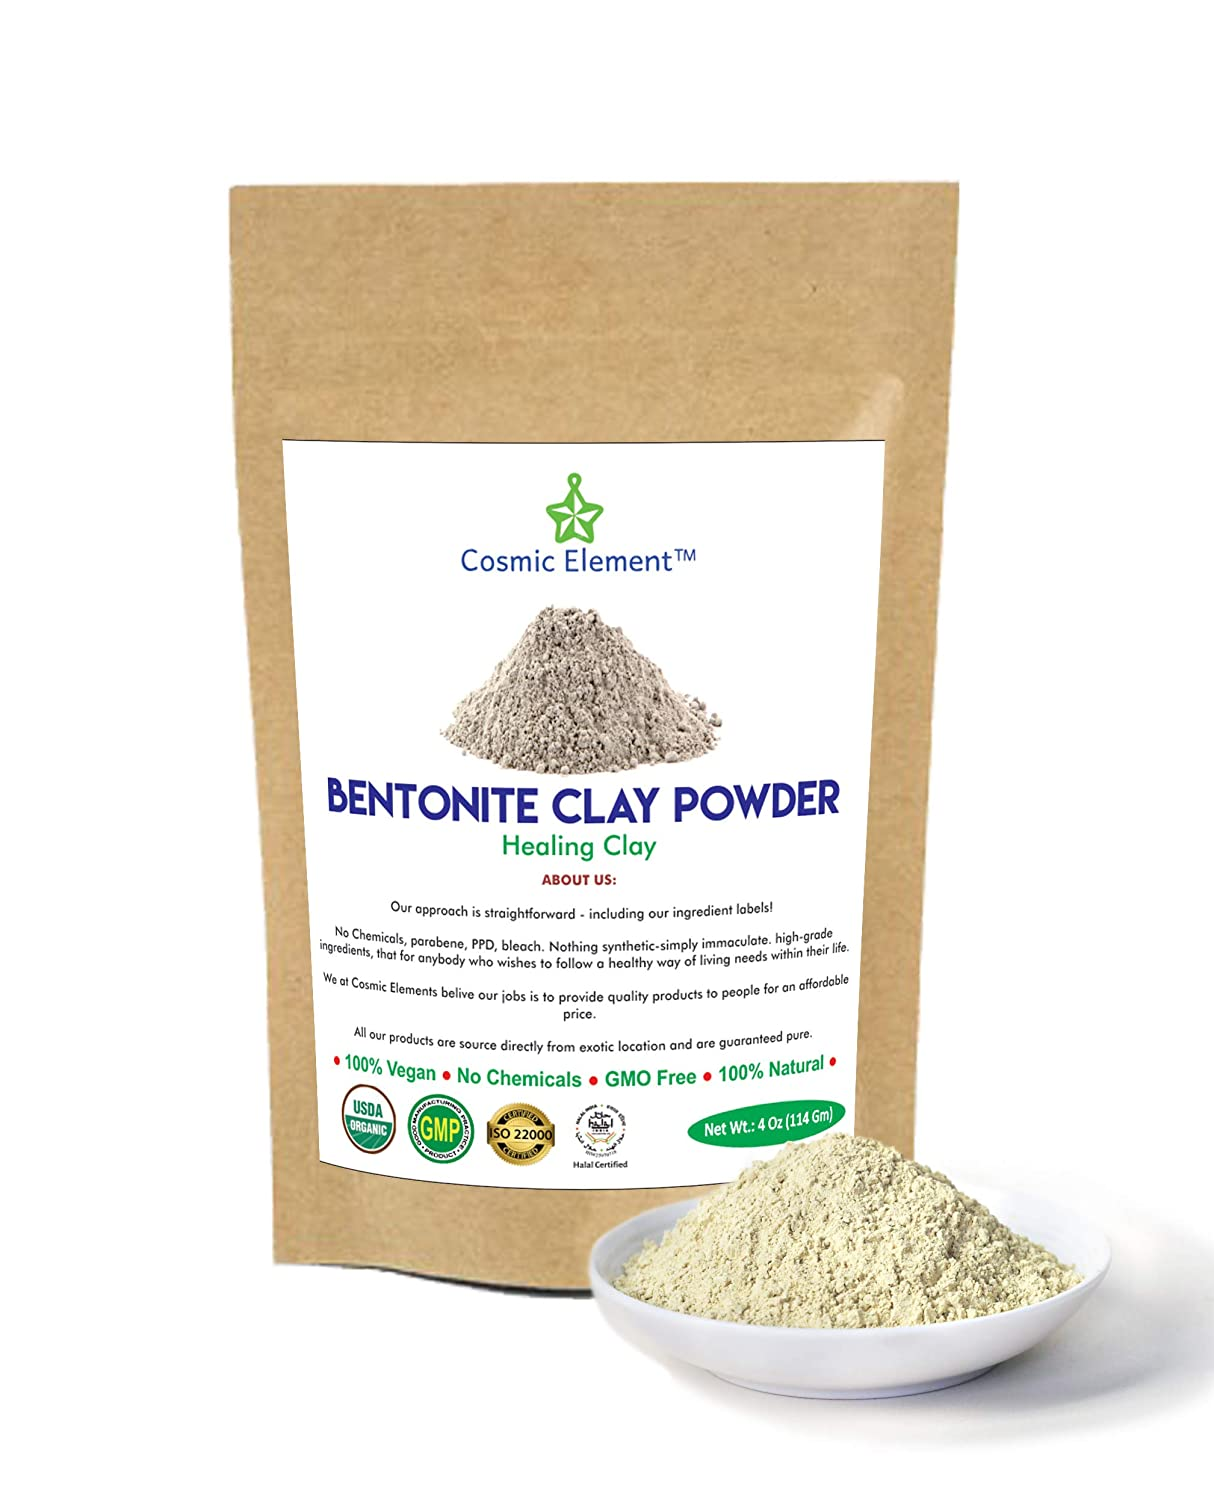 Cosmic Element Bentonite Clay Powder 100% Pure & Unrefined 4 Ounce Premium Food Grade Calcium Bentonite Clay - Heavy Metal Detox and Cleanse